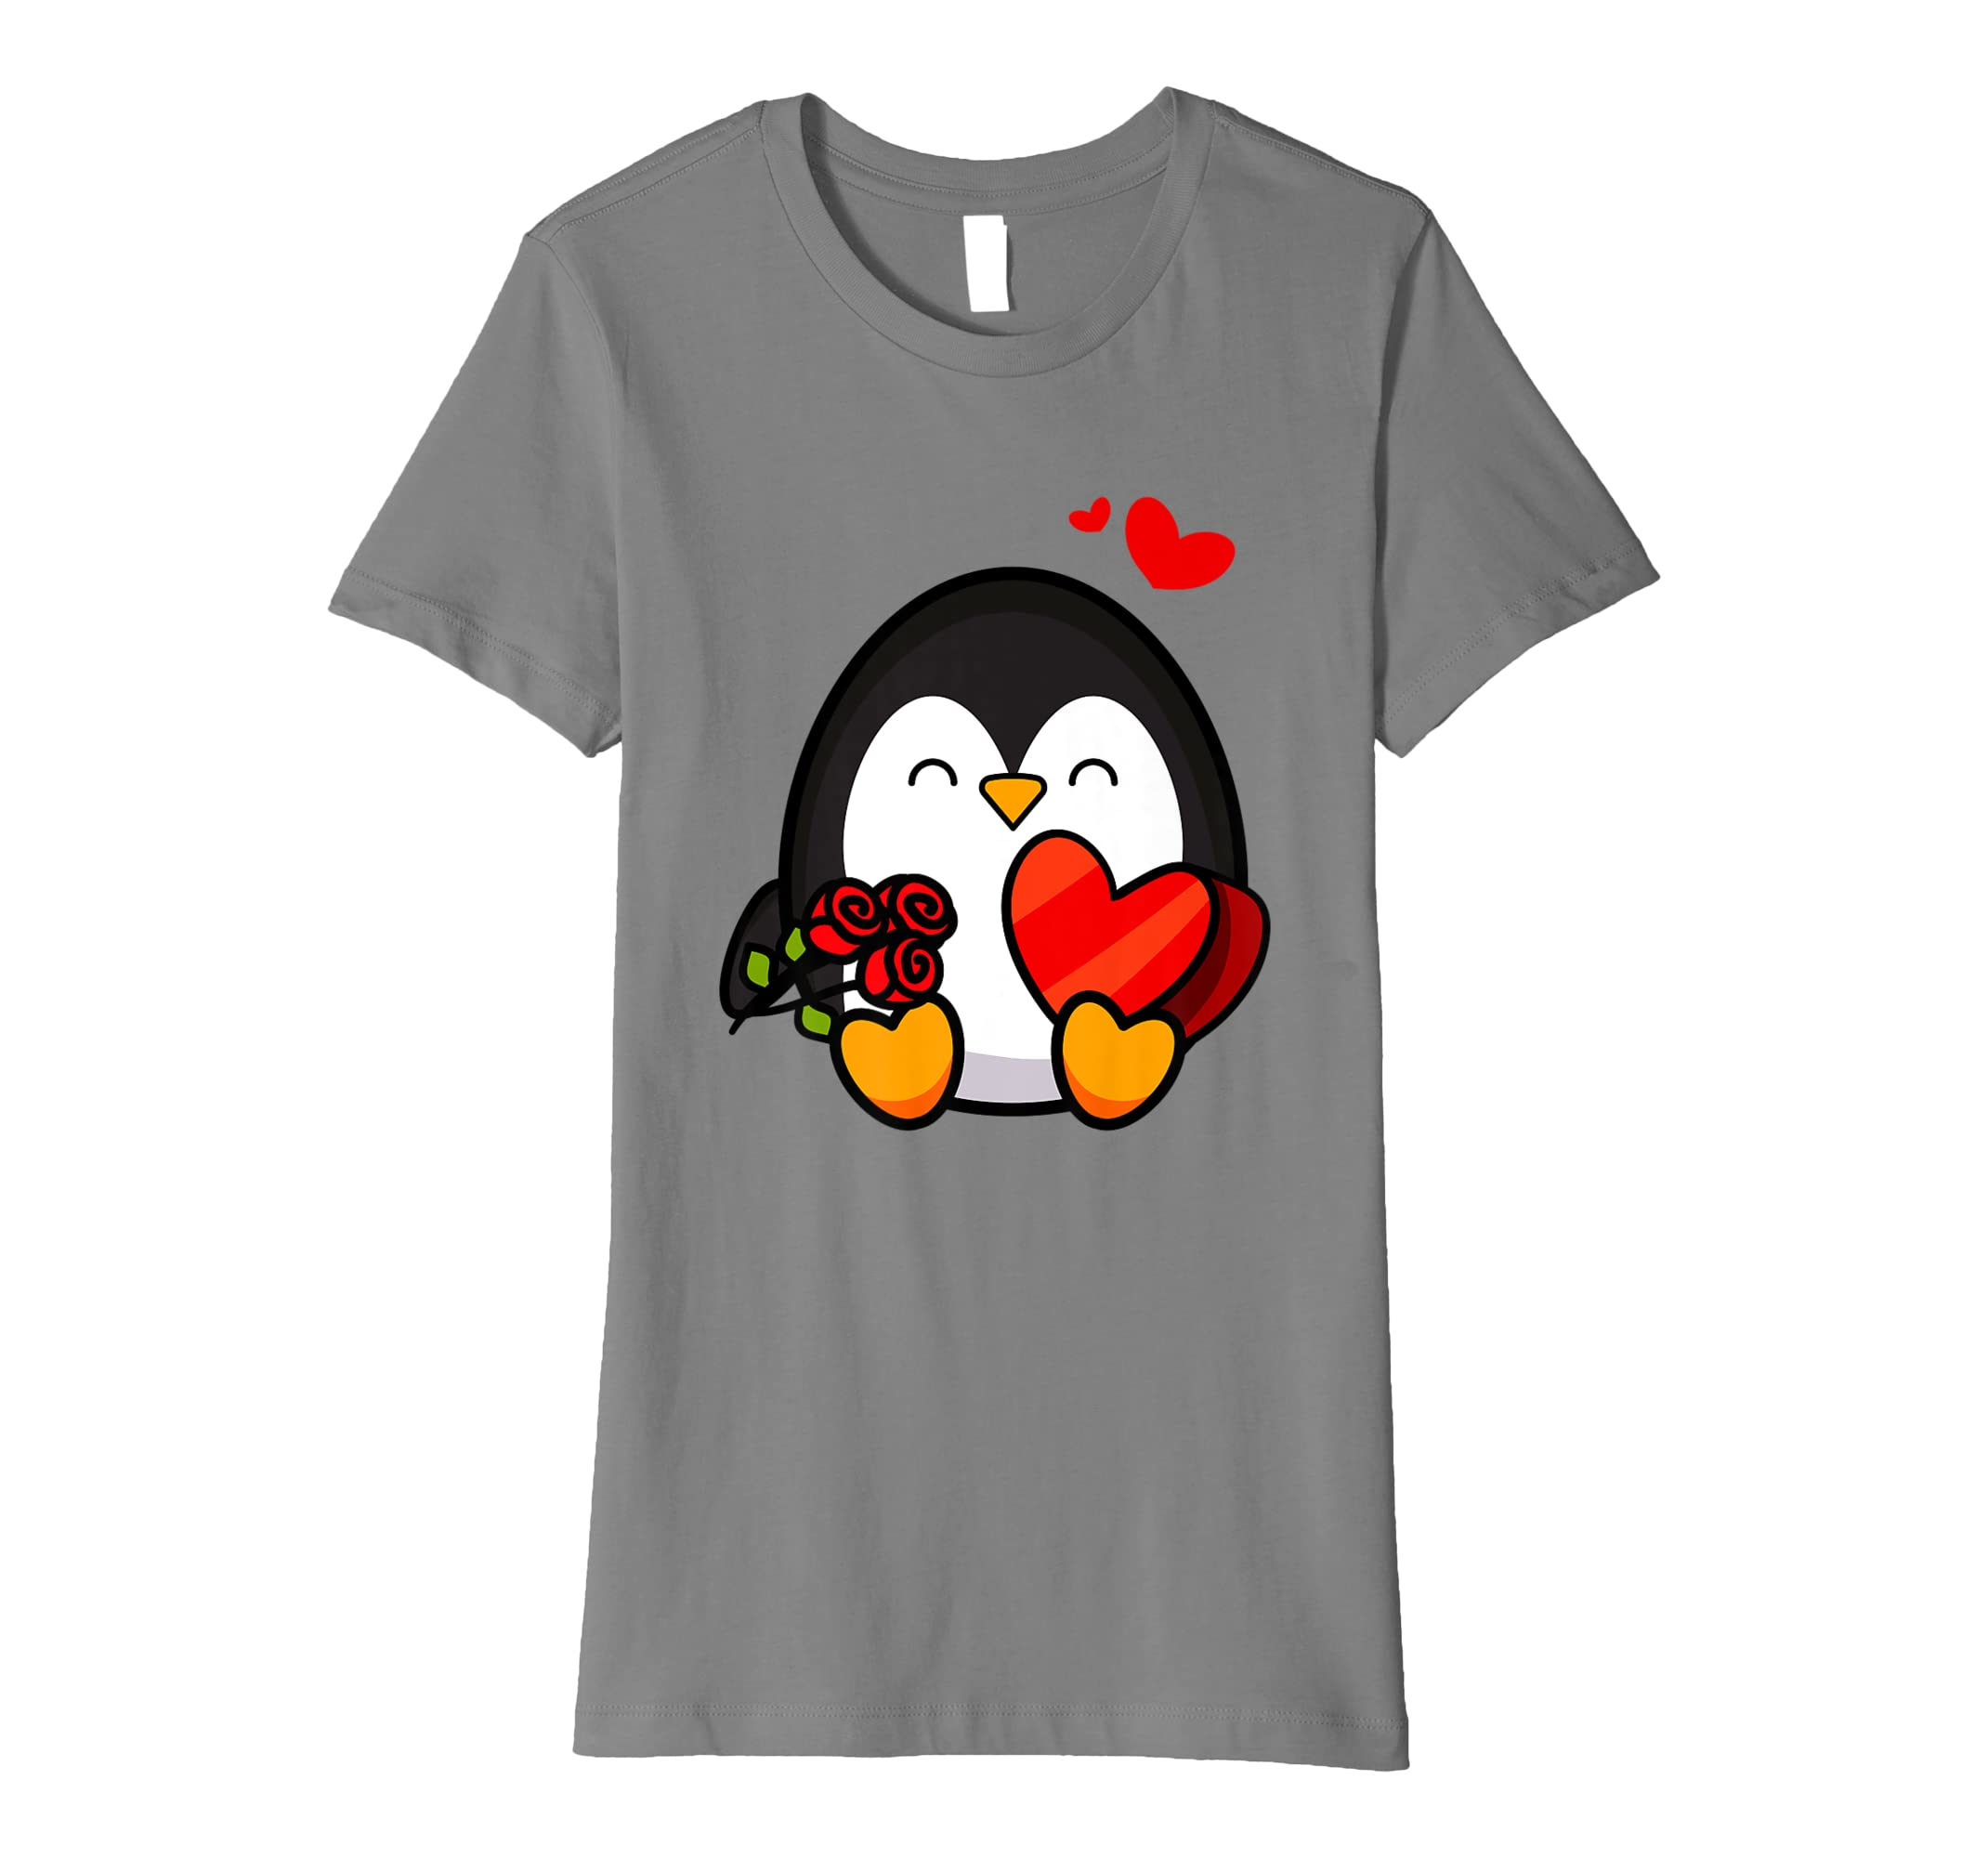 Amazon com: Valentine Penguin Shirt | Cool Cupid Seabird T